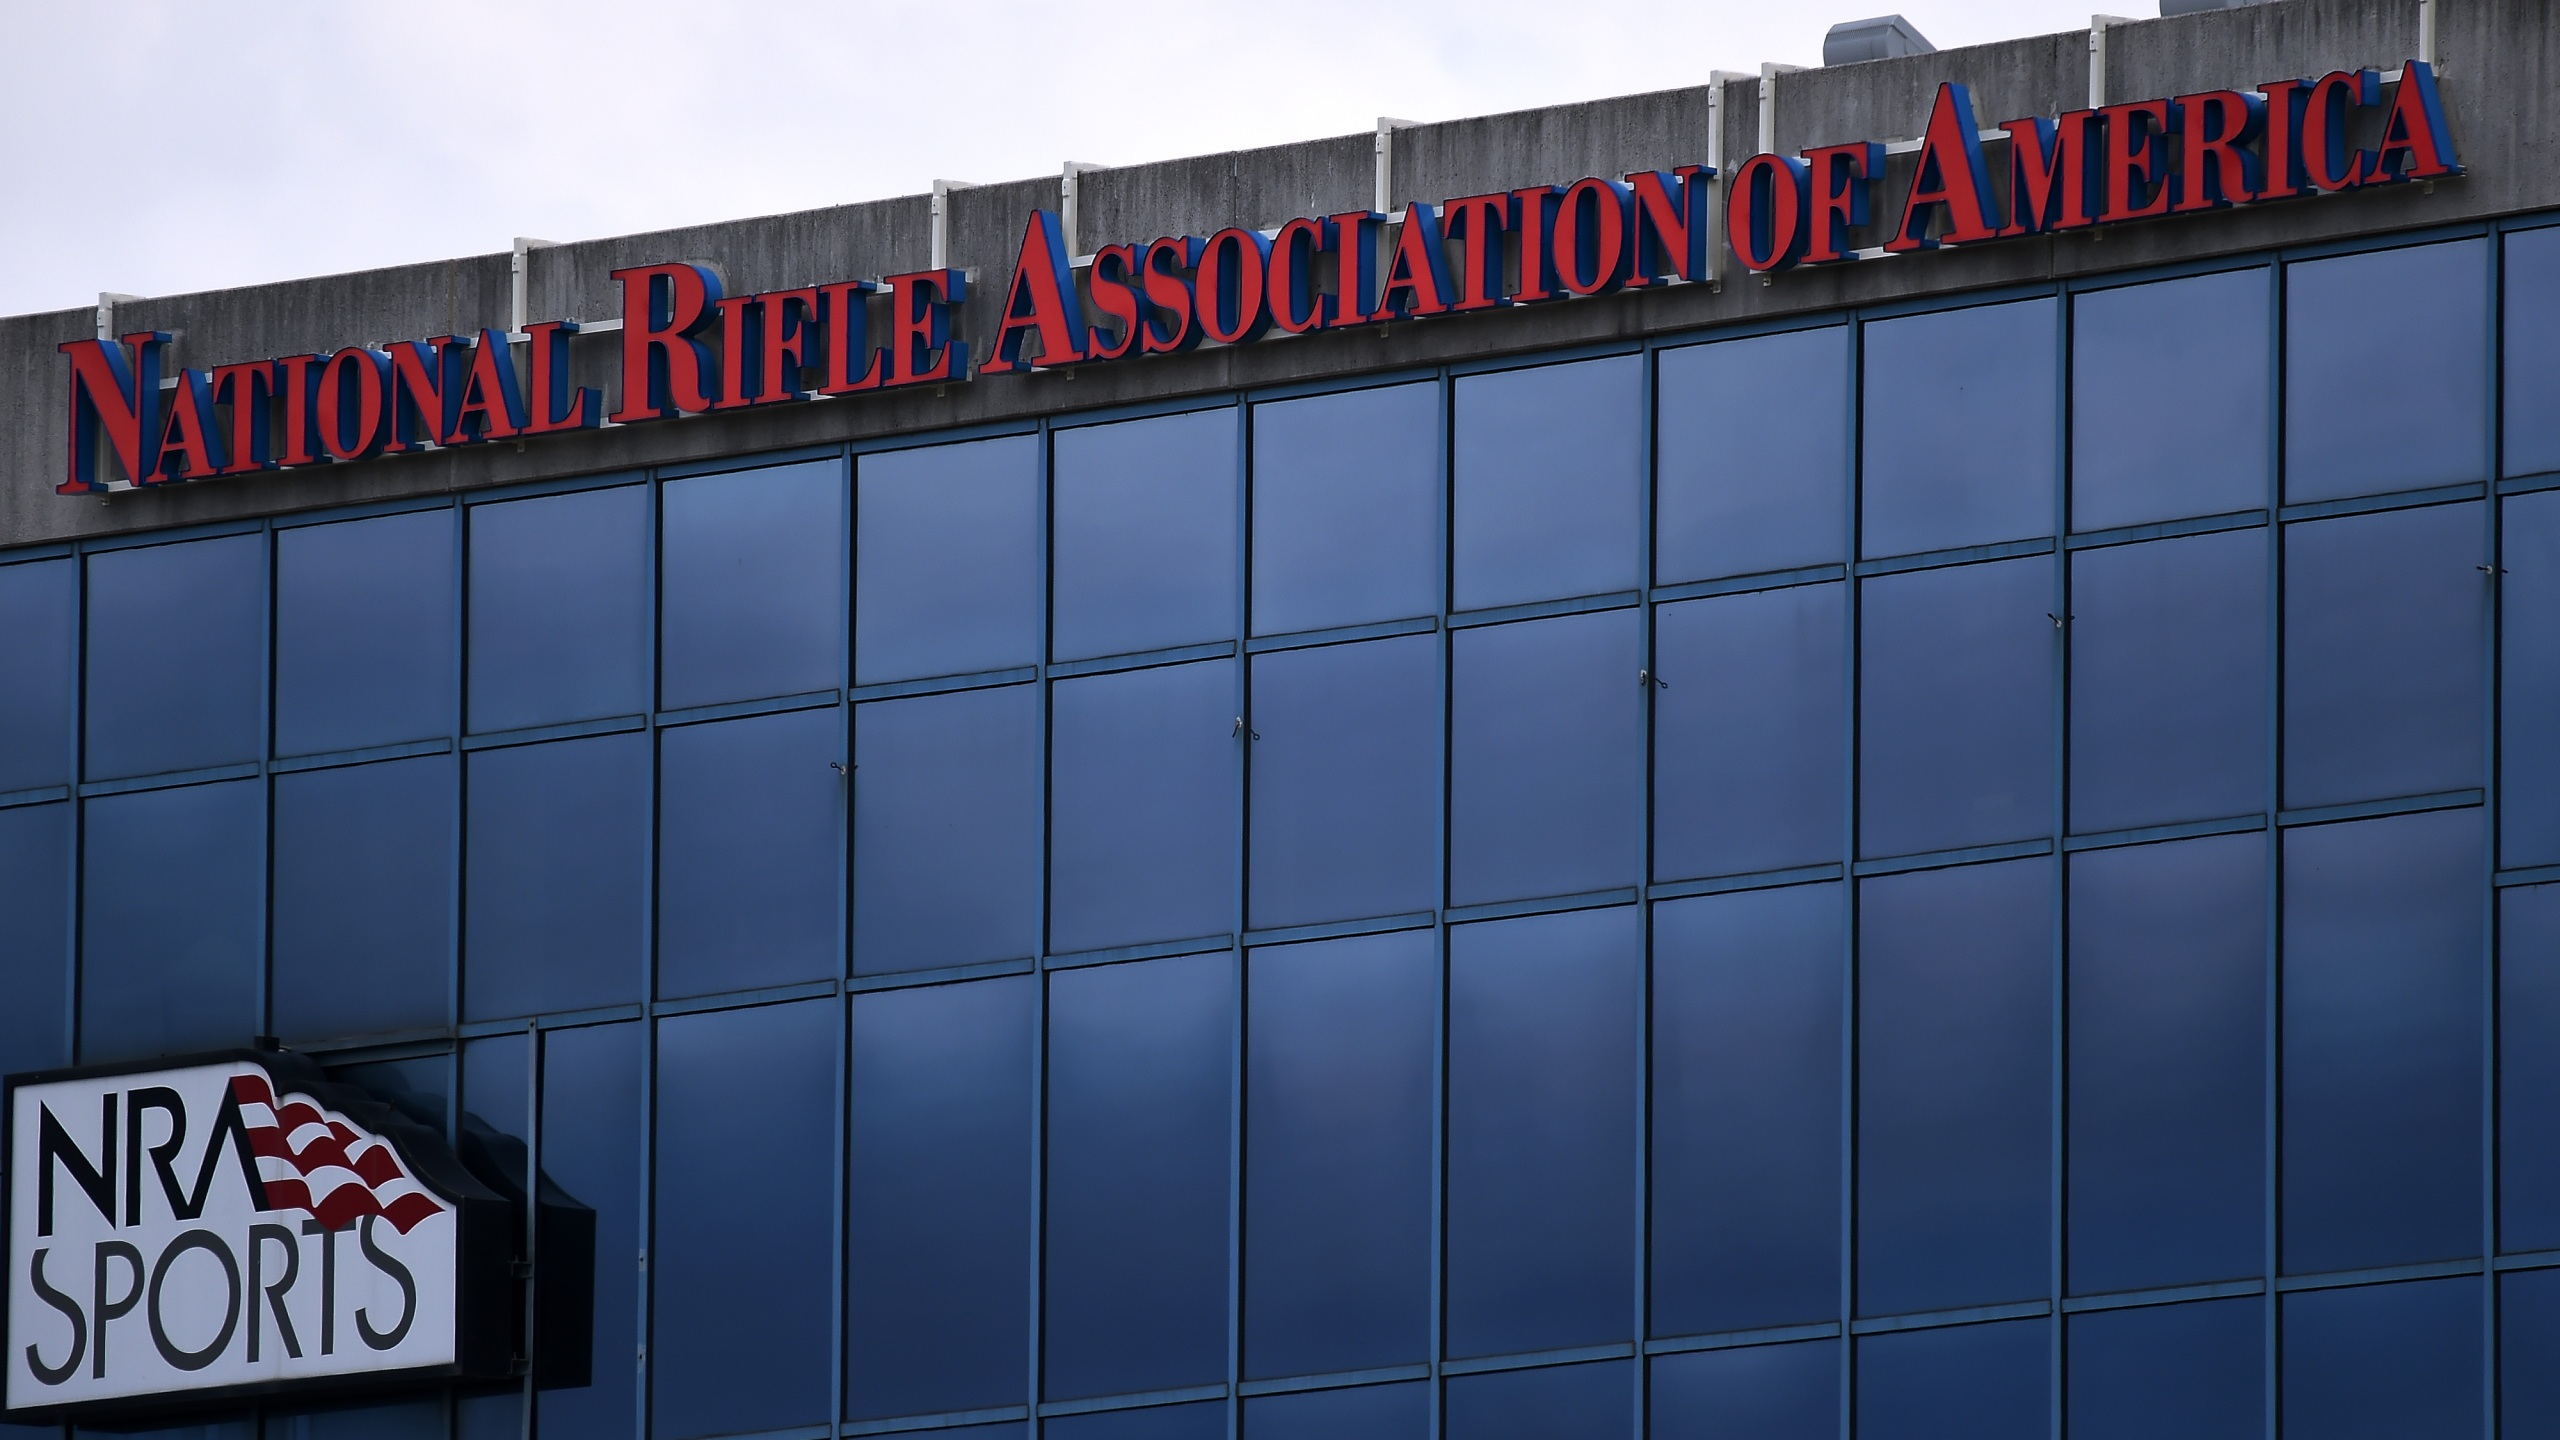 The National Rifle Association of America (NRA) headquarters on Aug. 6, 2020. (OLIVIER DOULIERY/AFP via Getty Images)